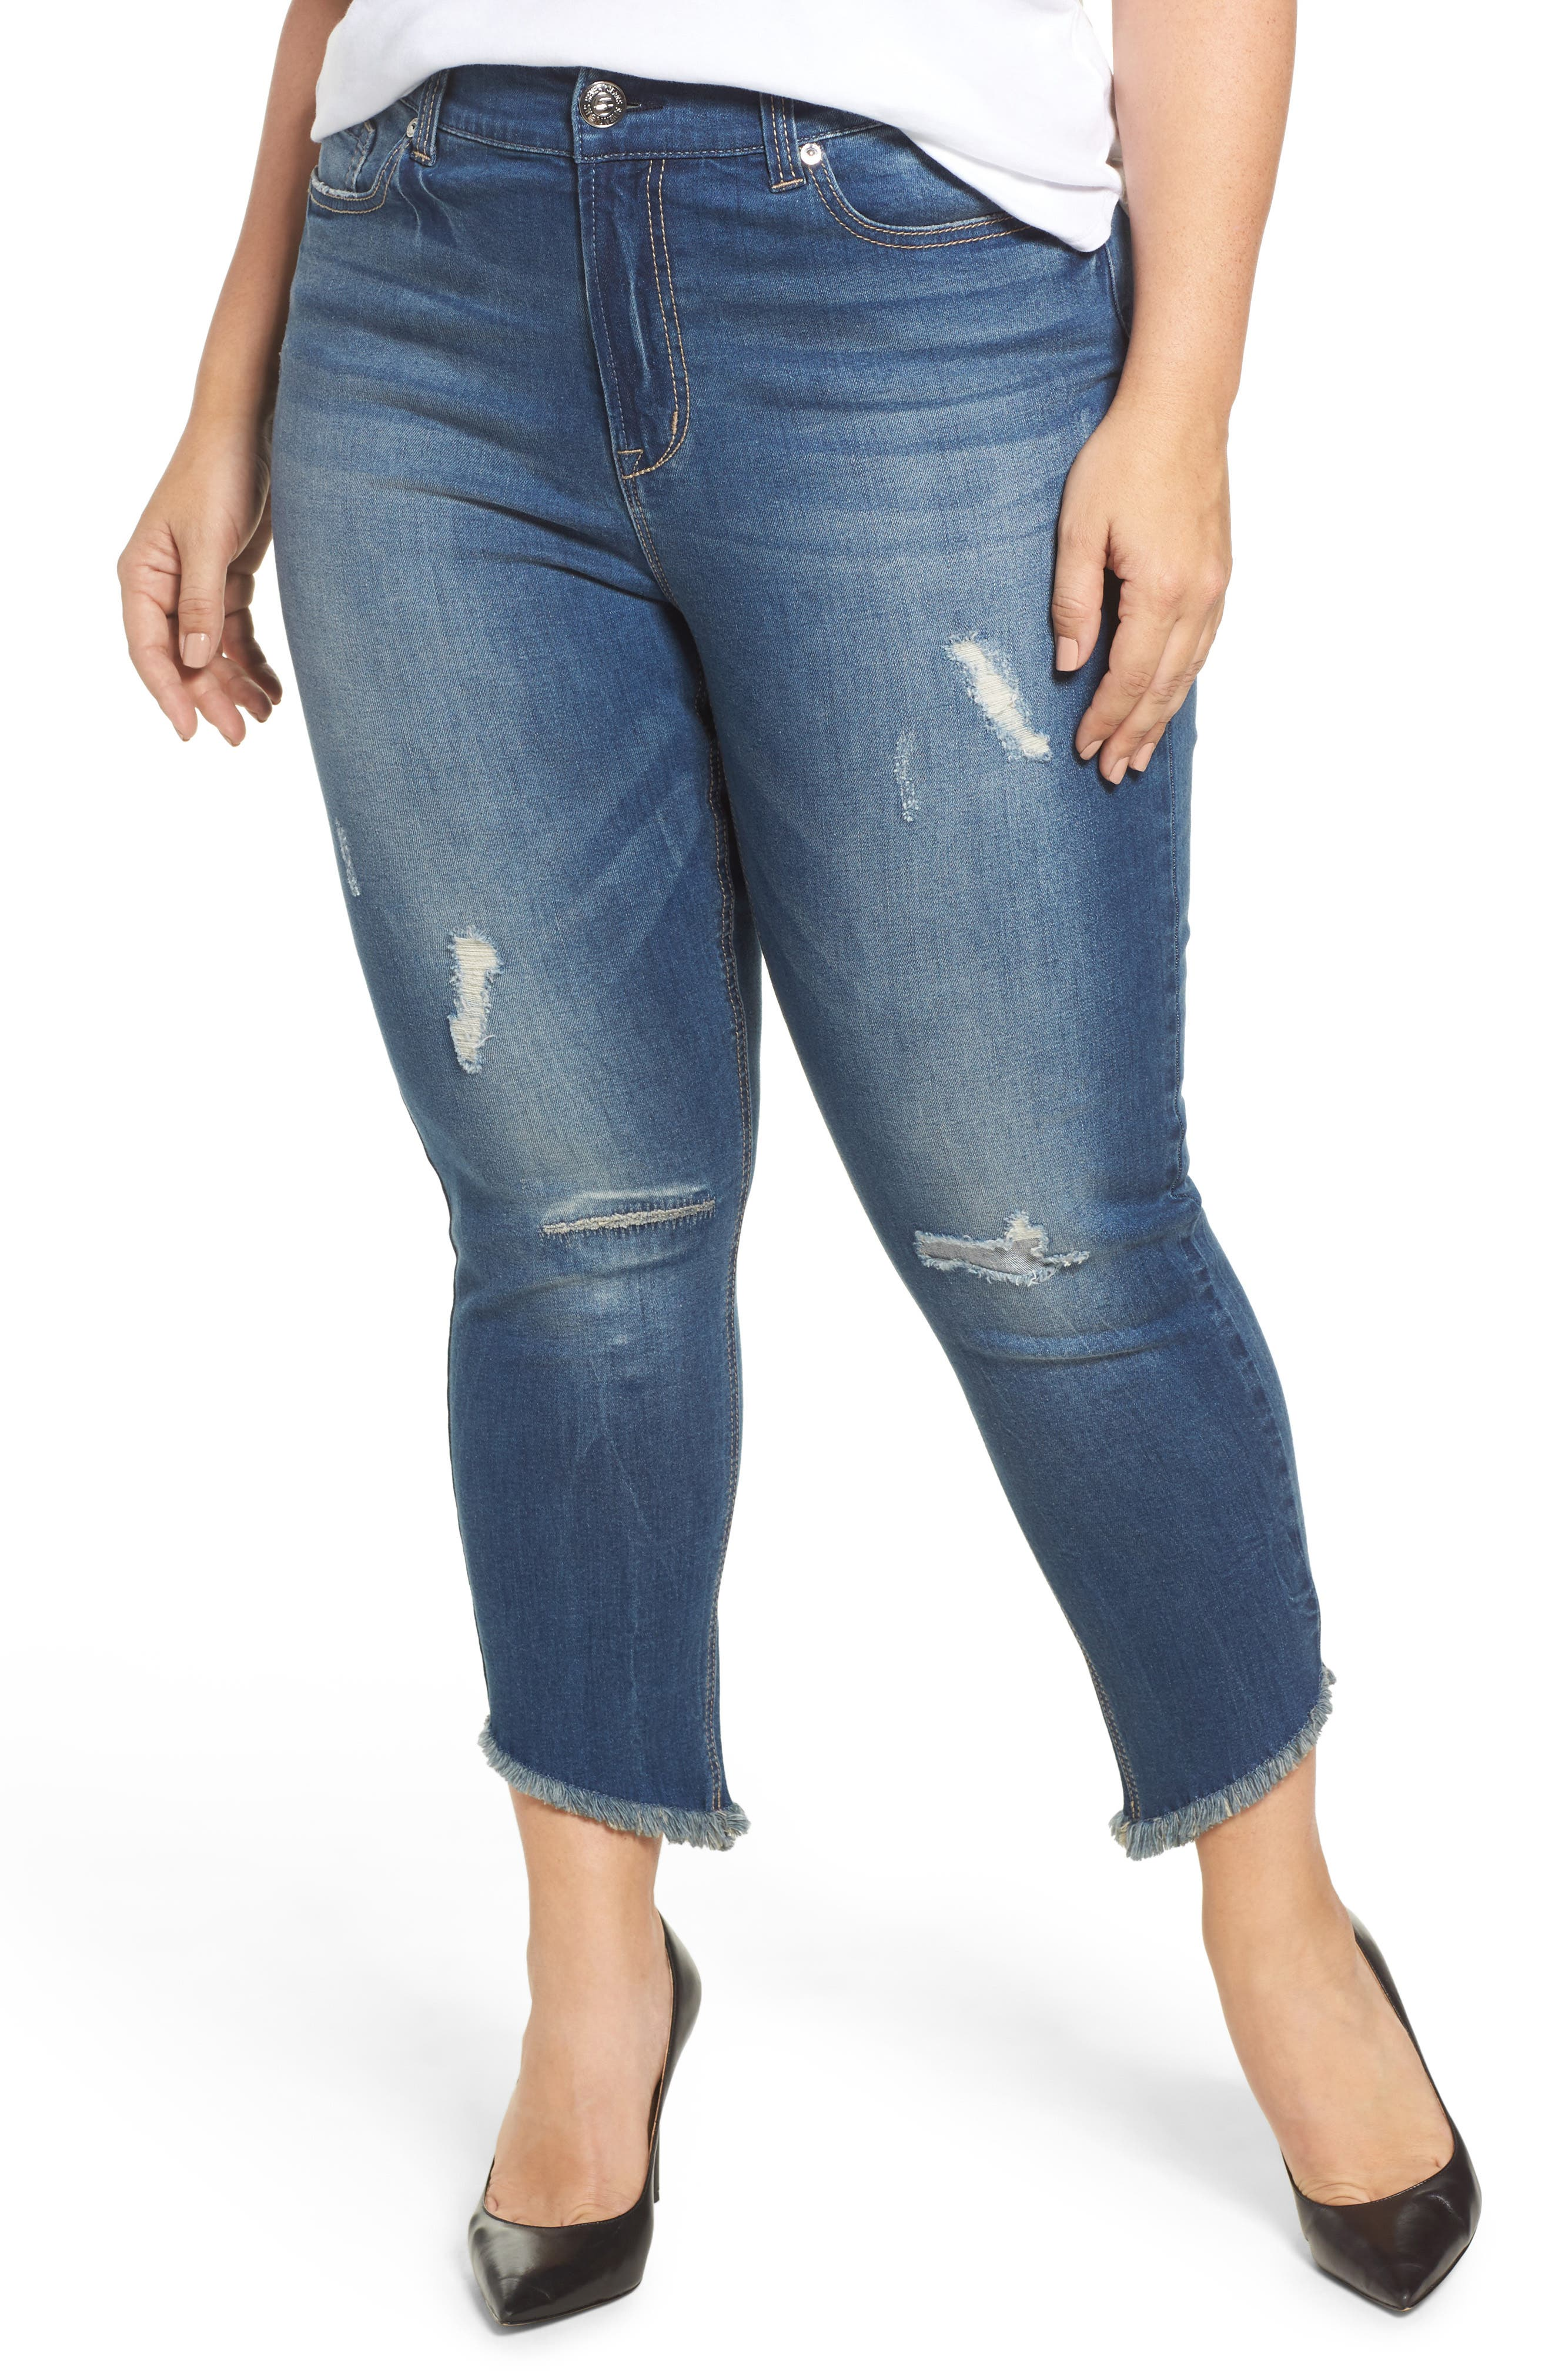 Alternate Image 1 Selected - Seven7 Frayed Hem Skinny Jeans (Plus Size)